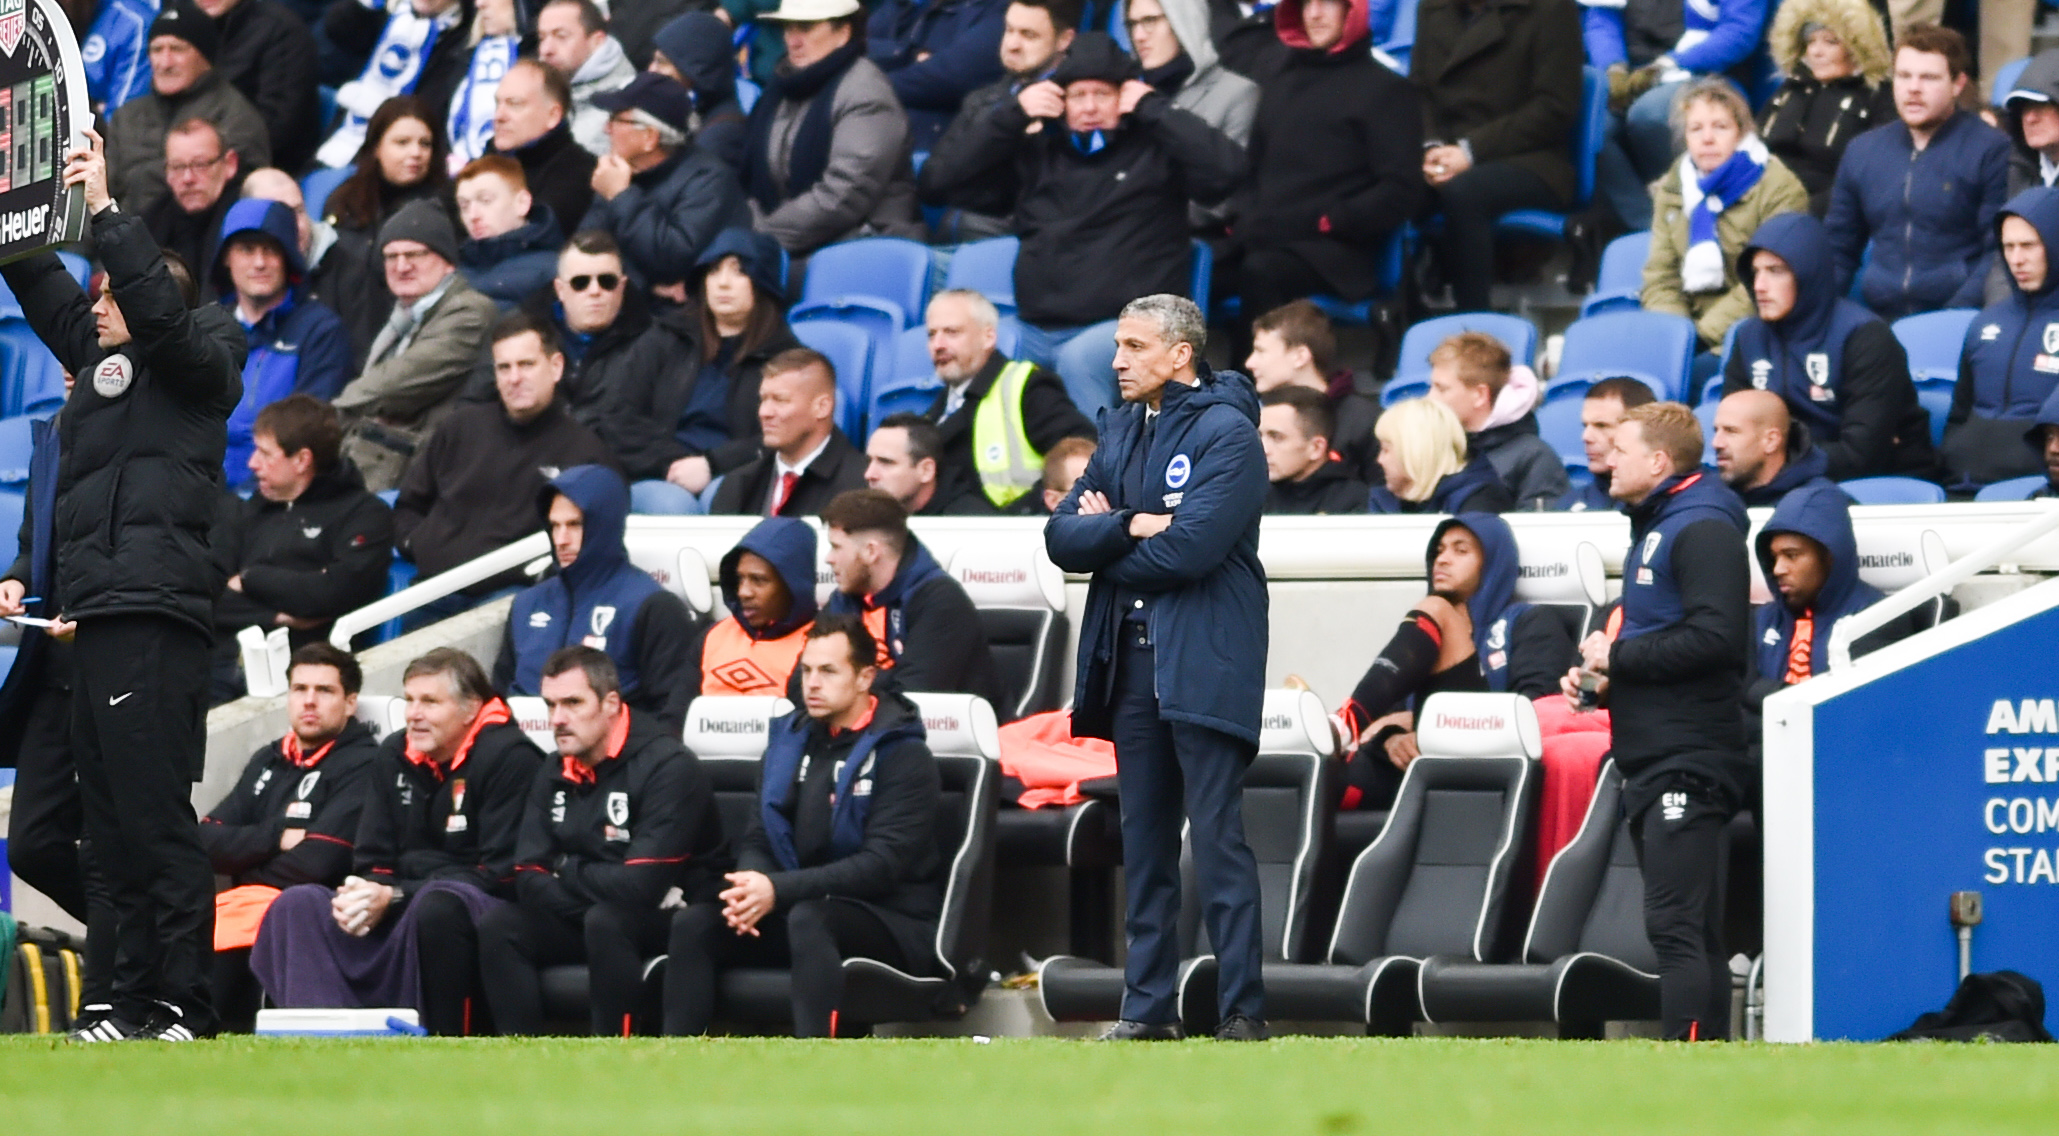 Chris Hughton watches the latter stages of the Bournenouth debacle